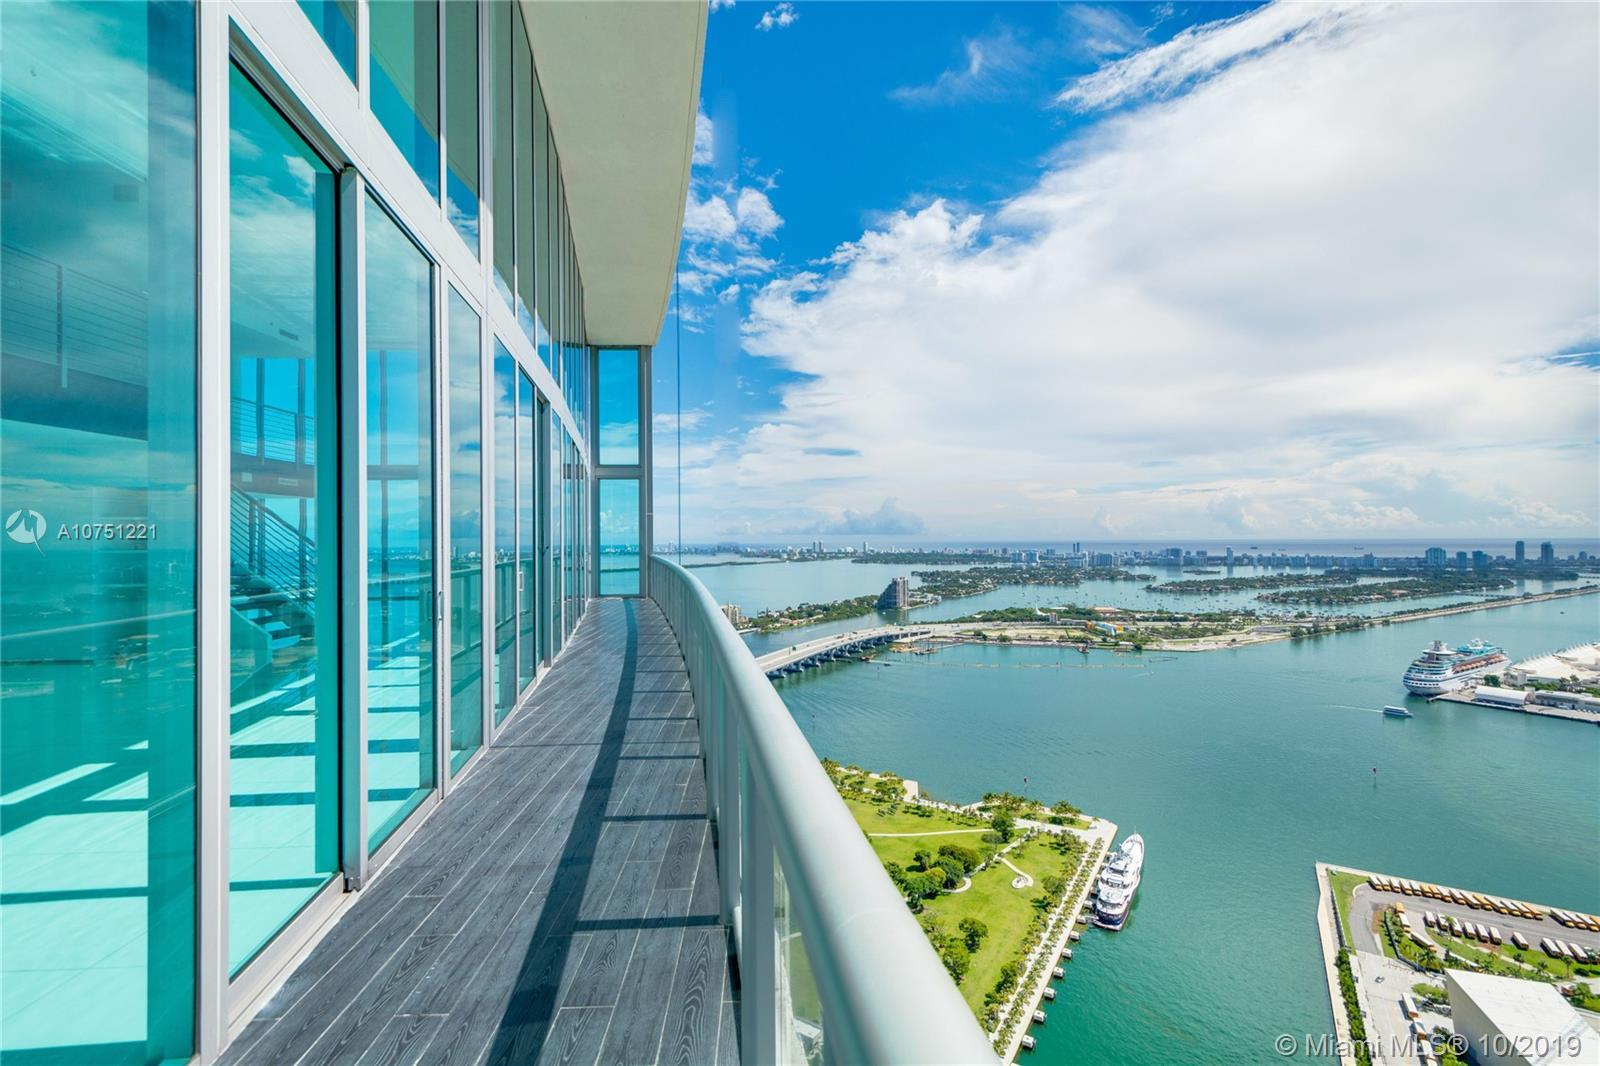 Penthouse was featured in the blockbuster movie Wardogs. Stunning Penthouse, Breathtaking Views. Ope